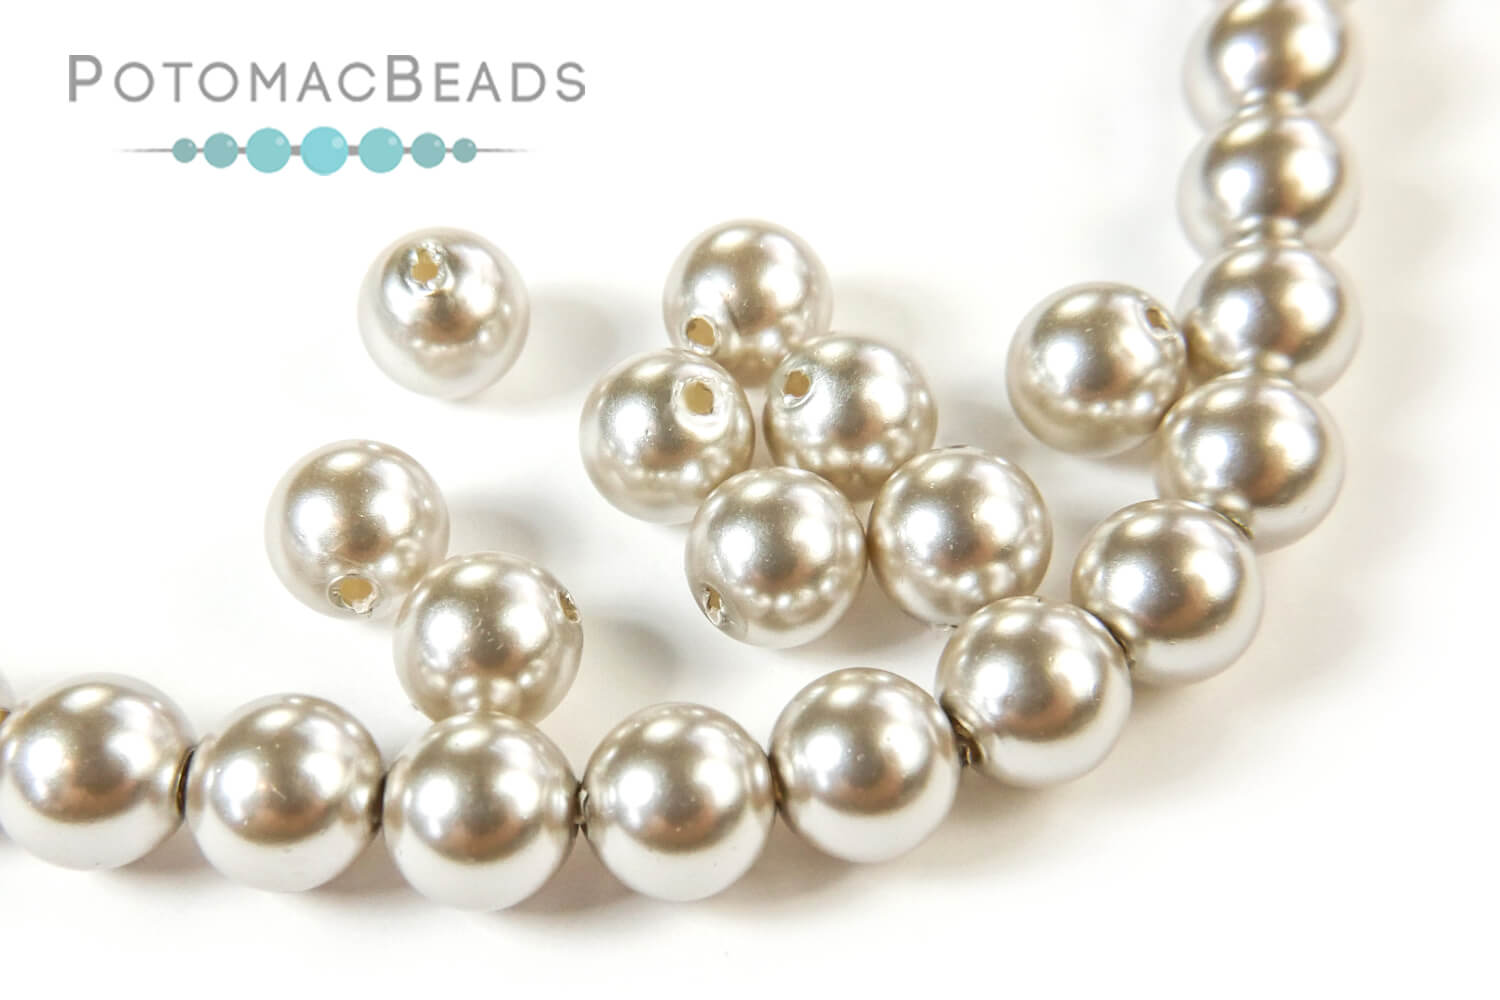 Jewelry Making Supplies & Beads / Pearls / Potomac Pearls